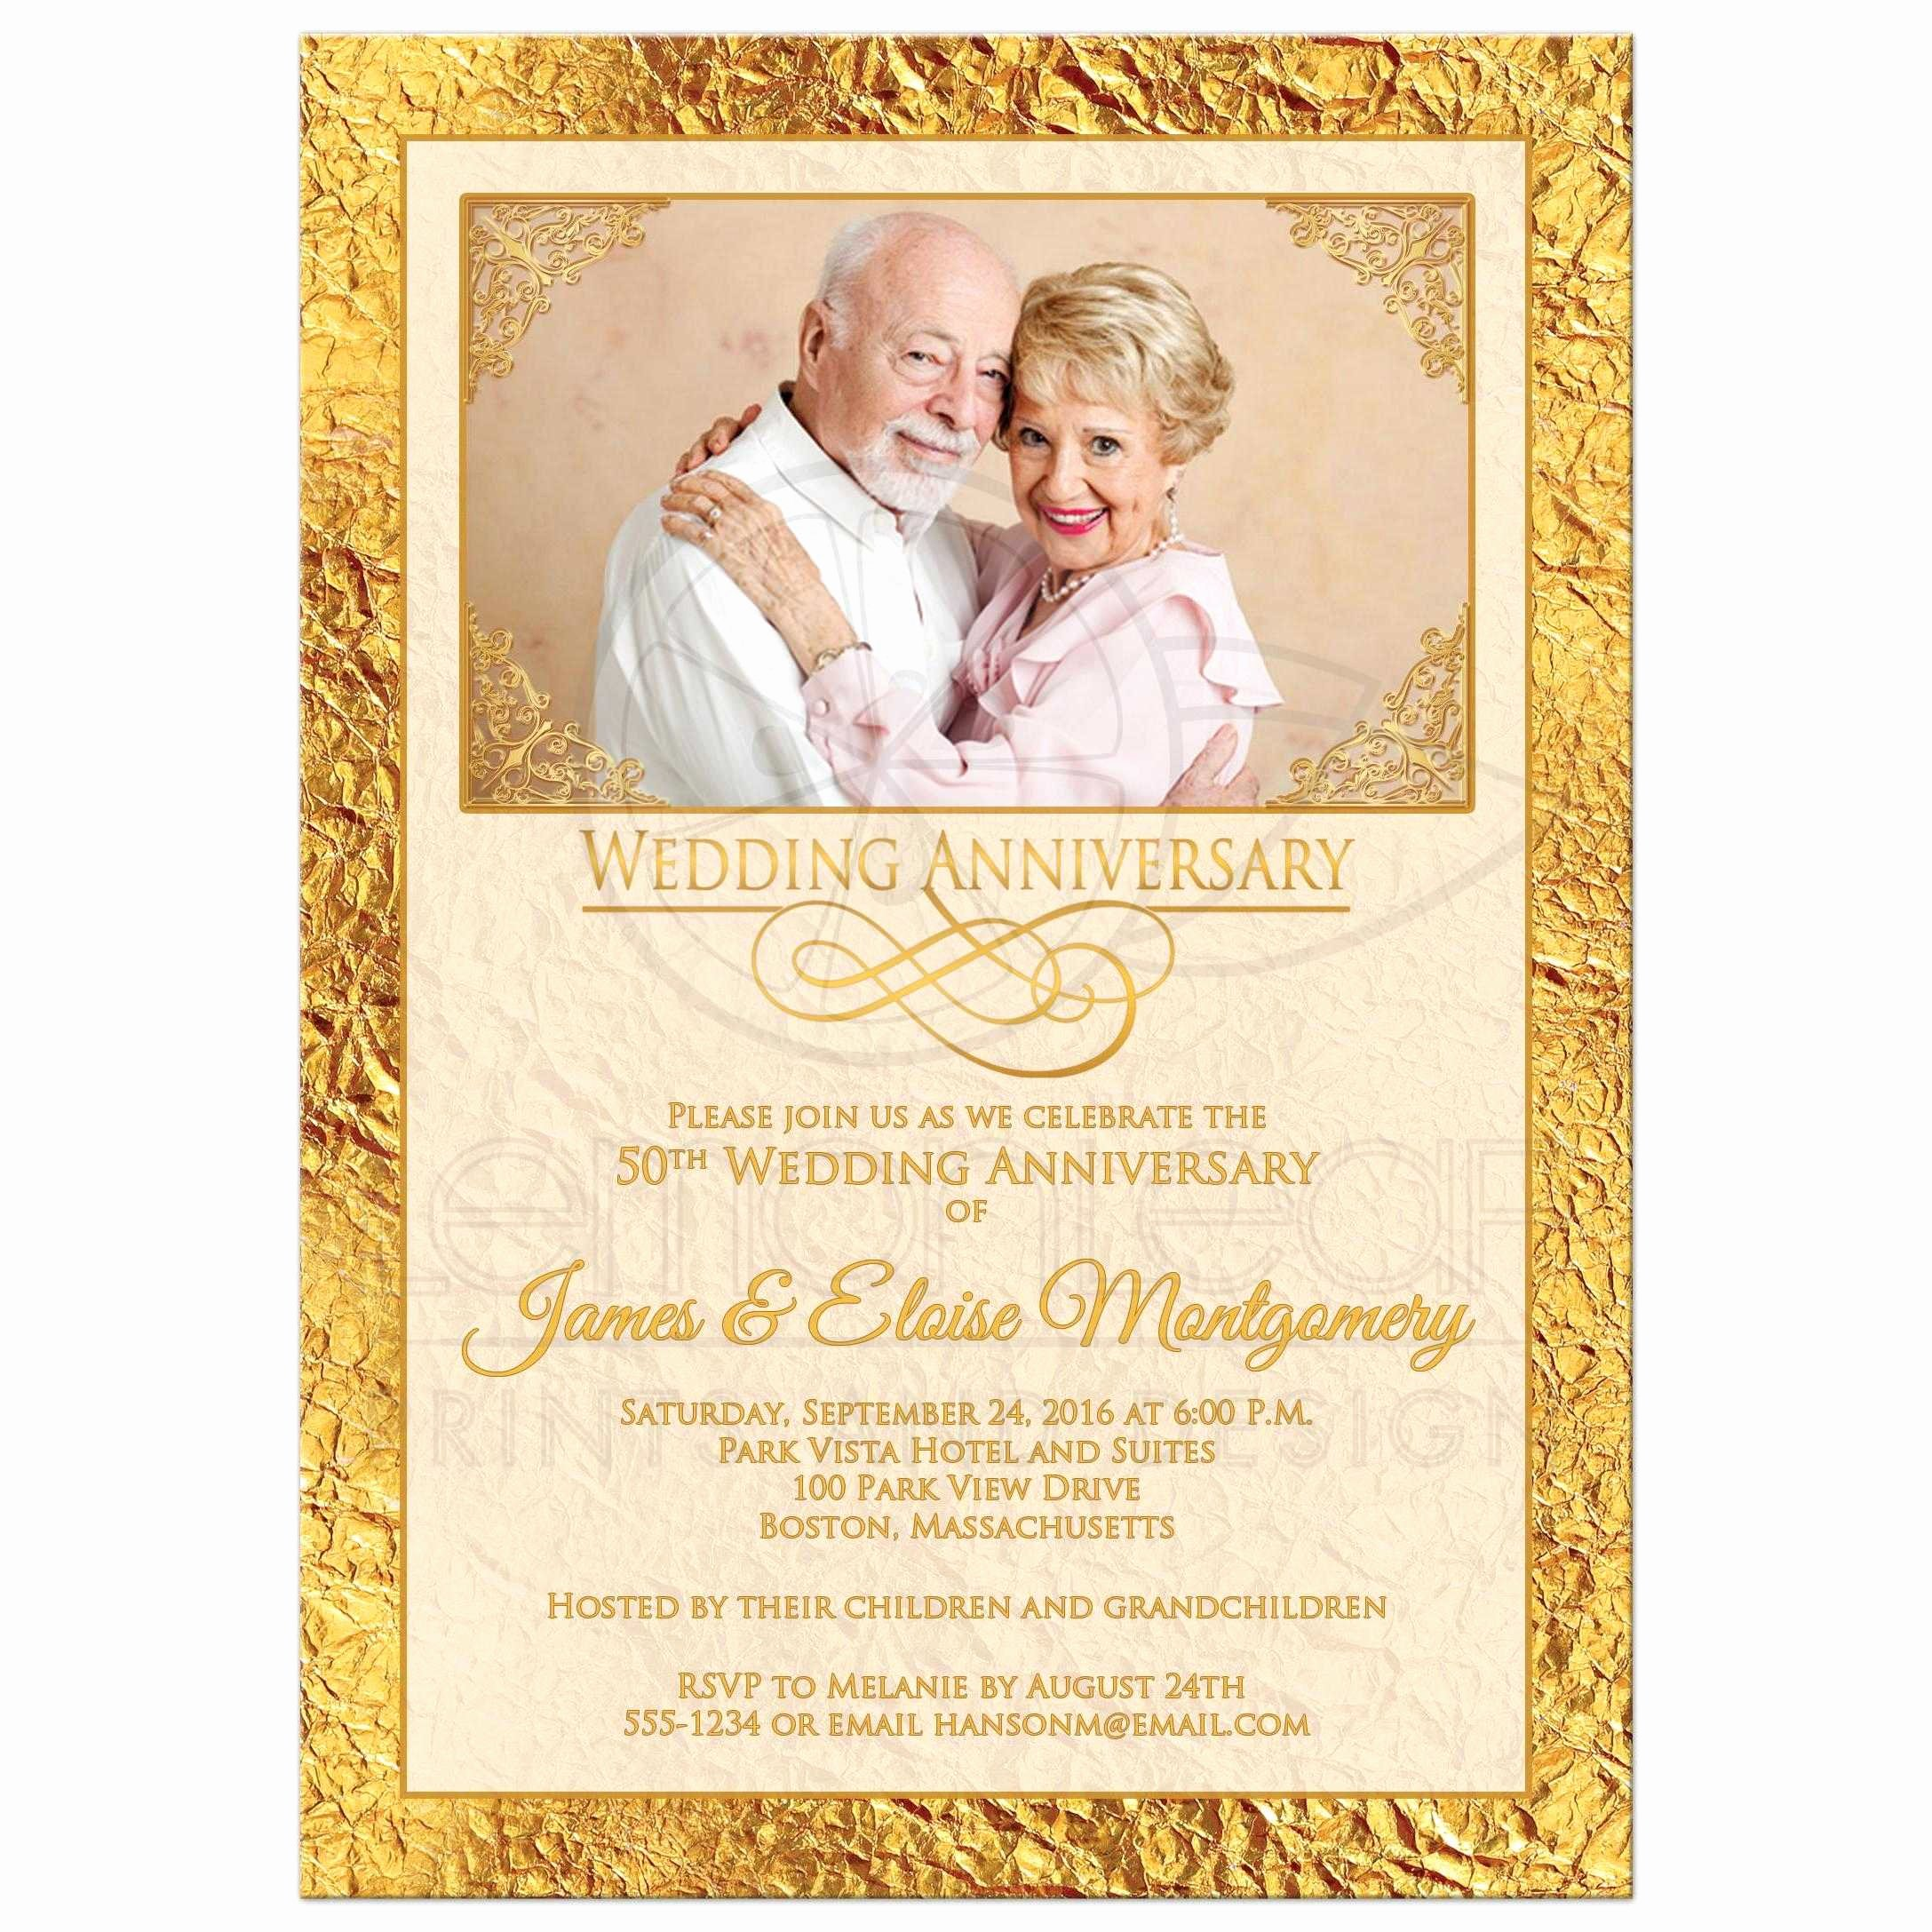 50th Wedding Anniversary Invitations Templates Beautiful 50th Wedding Anniversary Invitation Ivory Gold Scrolls